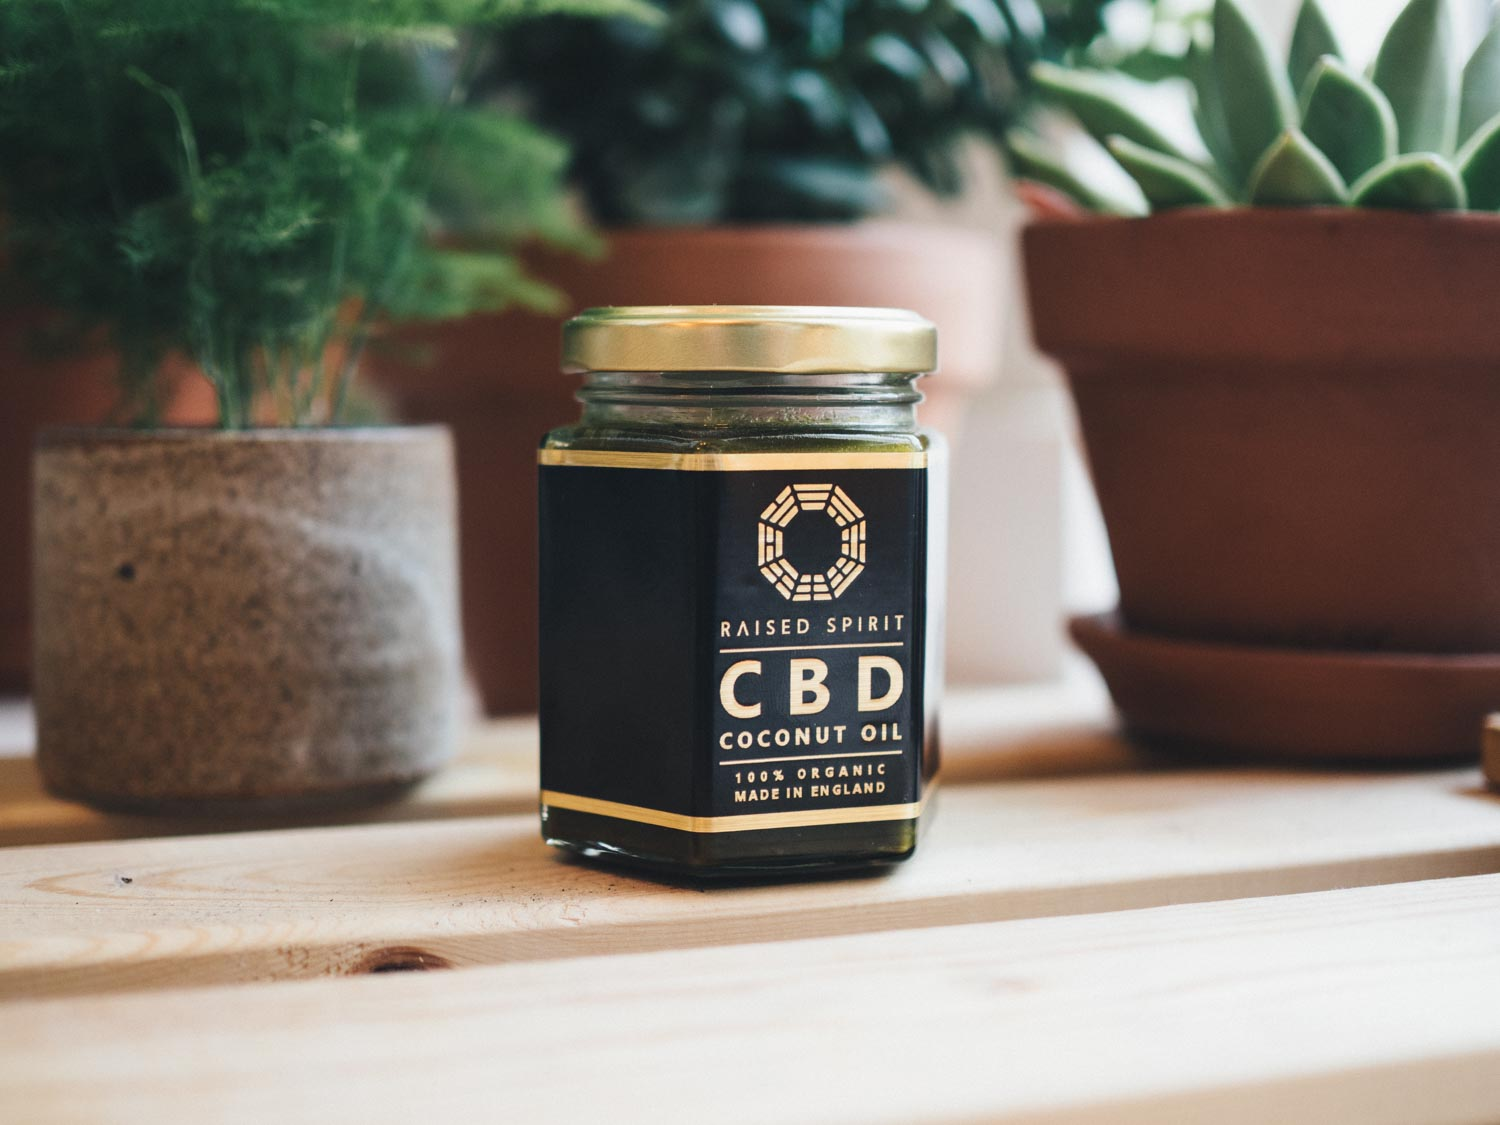 Raised Spirit Organic CBD Coconut Oil